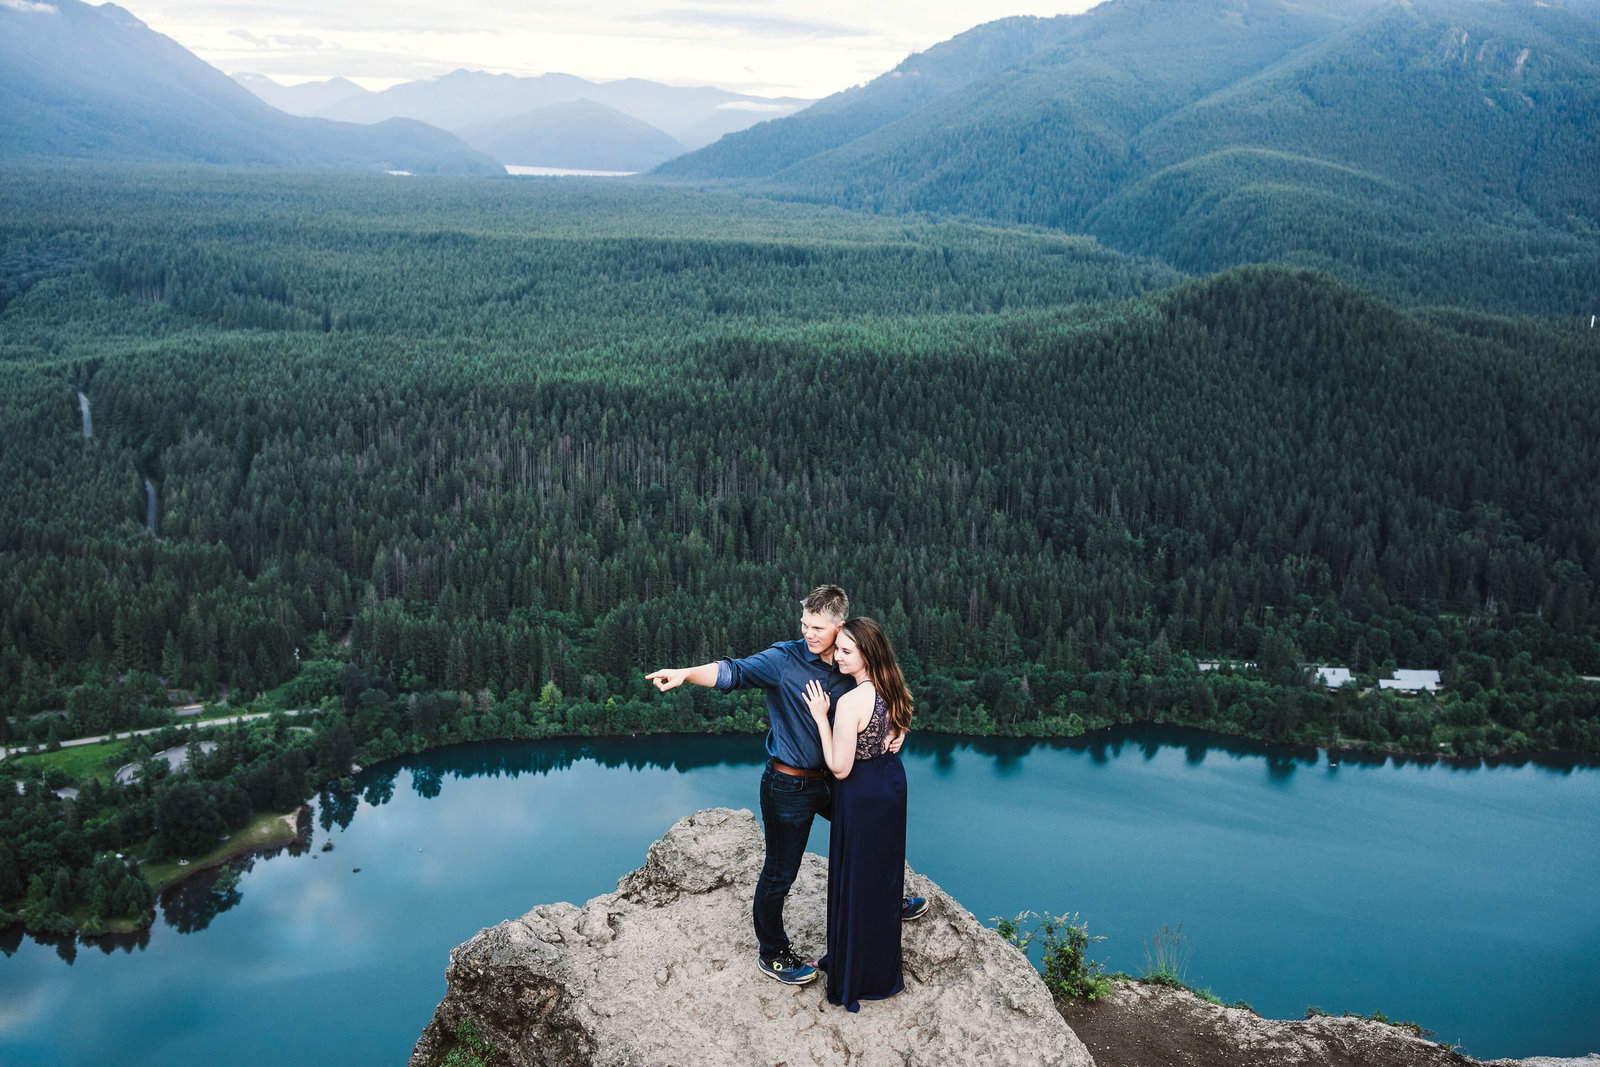 Eivind+Elyse_Engagement_Rattlesnake_lake_ridge_Seattle_Photographer_Adina_Preston_Weddings_203